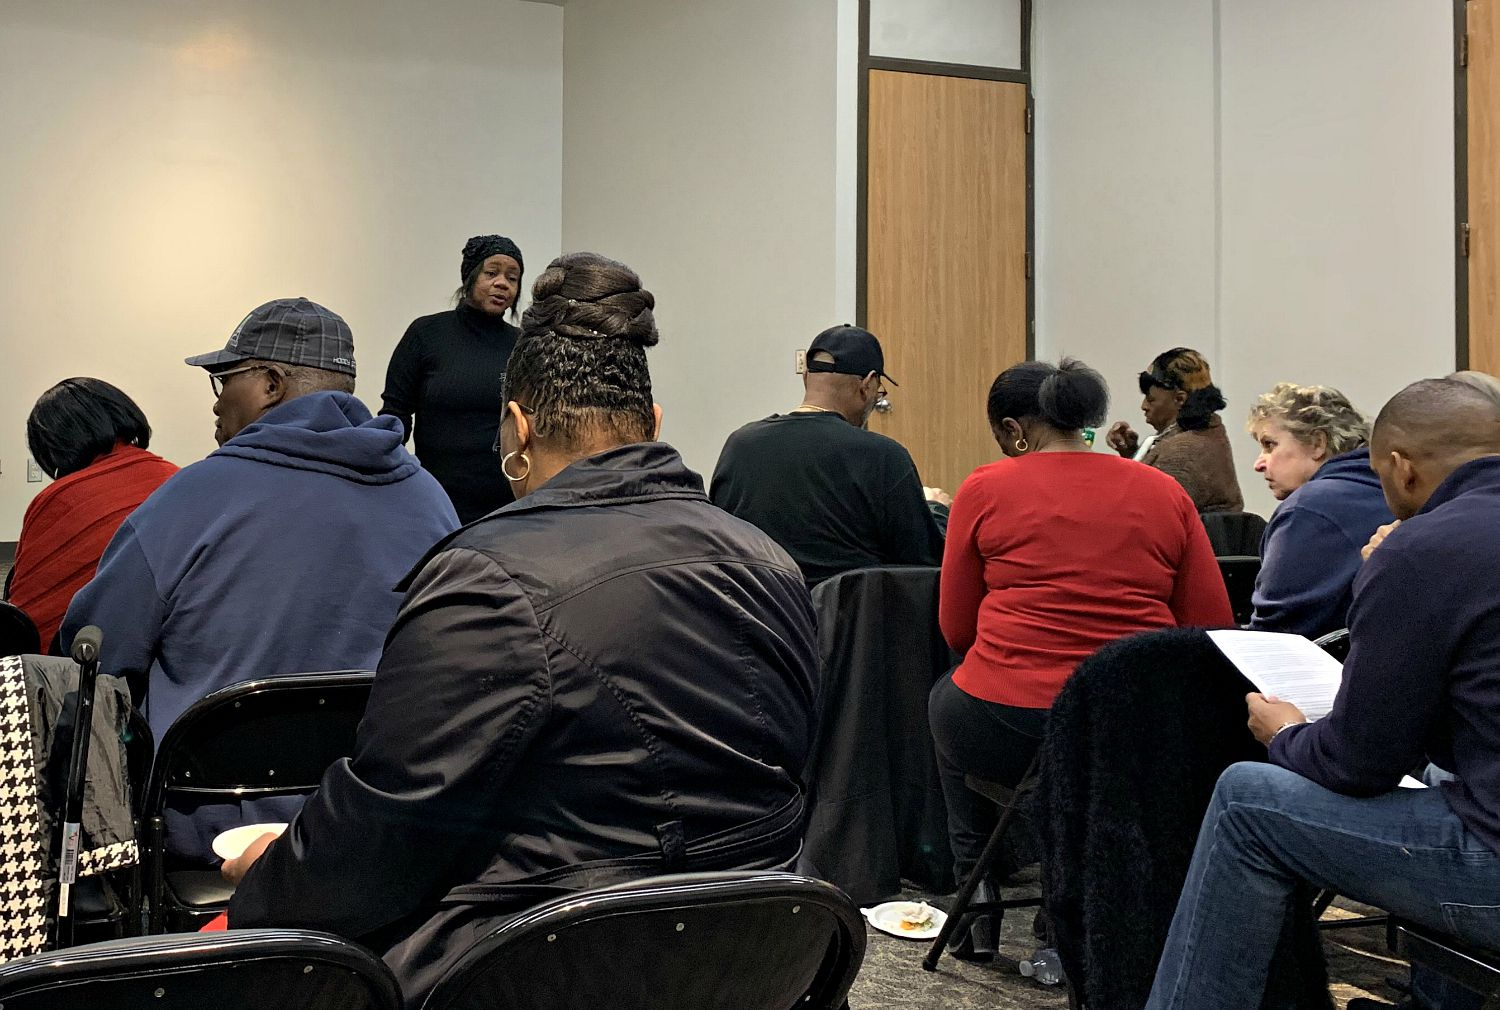 Five Mile Neighborhood Association President Felicia Sewell at Saturday's community meeting in council member Tennell Atkins' office. Residents presented city officials and staff with a list of infrastructure needs long ago demanded and ignored by City Hall.